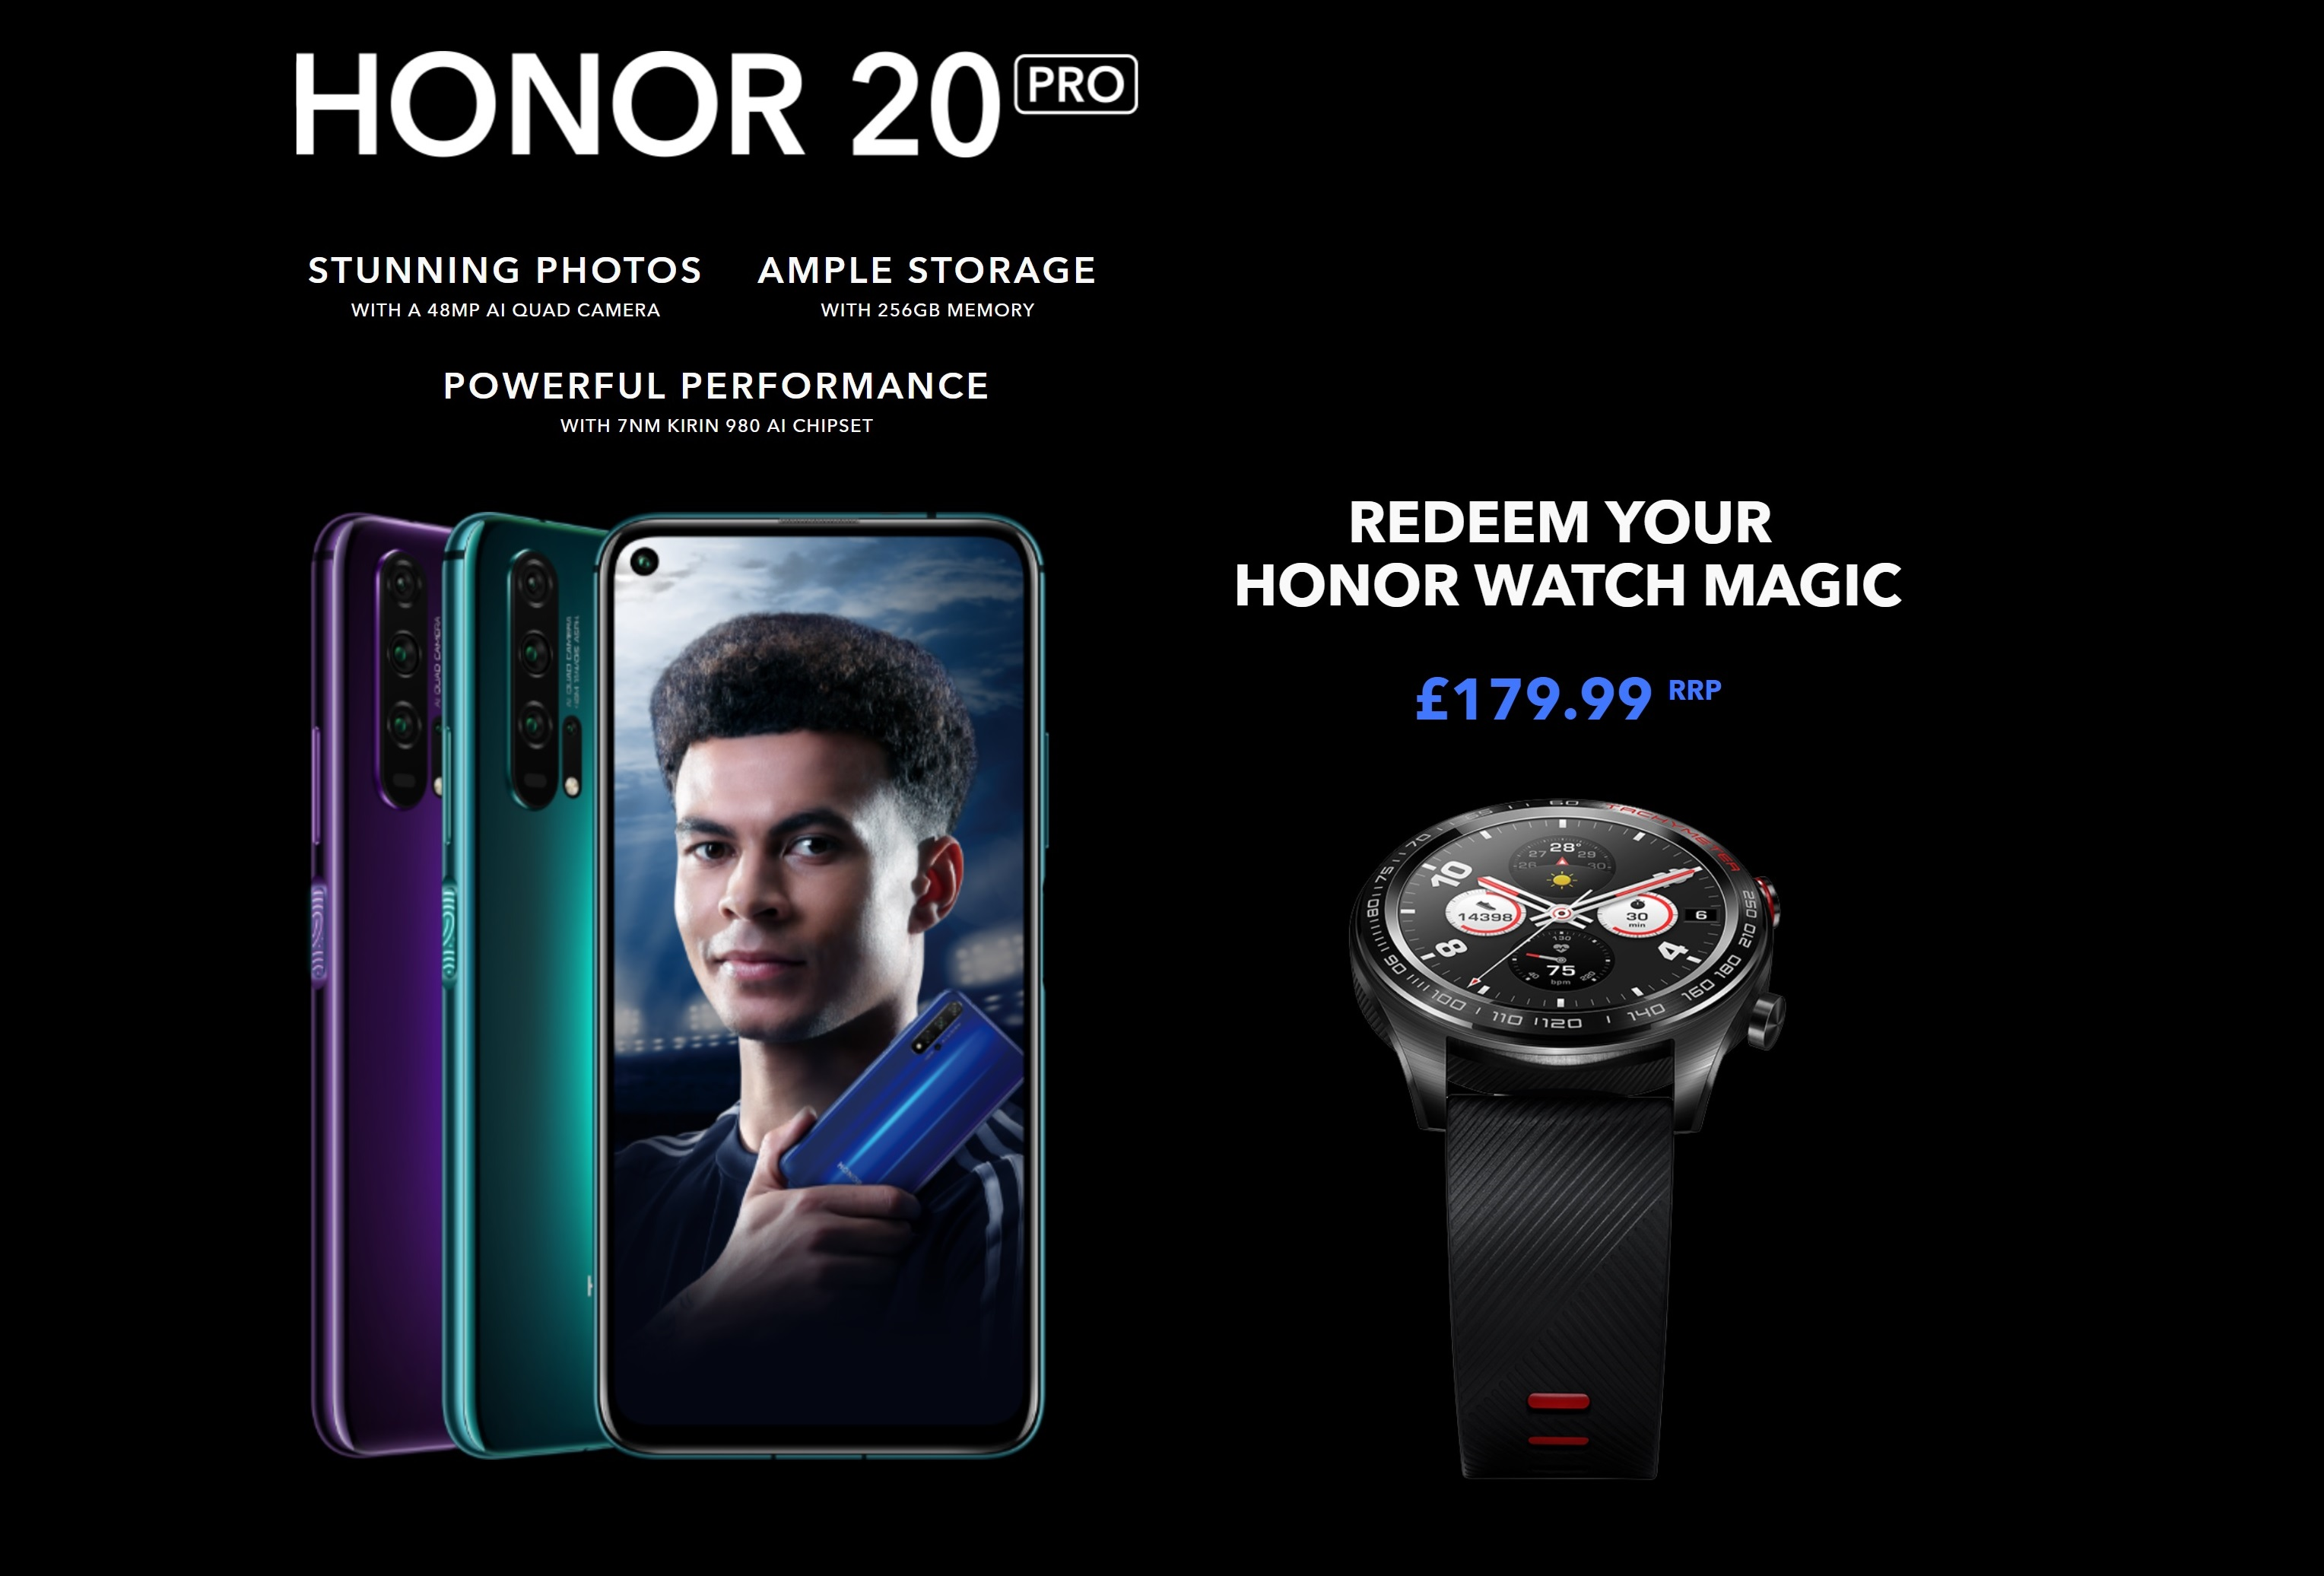 Claim a free Honor Magic Watch wirth £179 with Honor 20 Pro contract deals